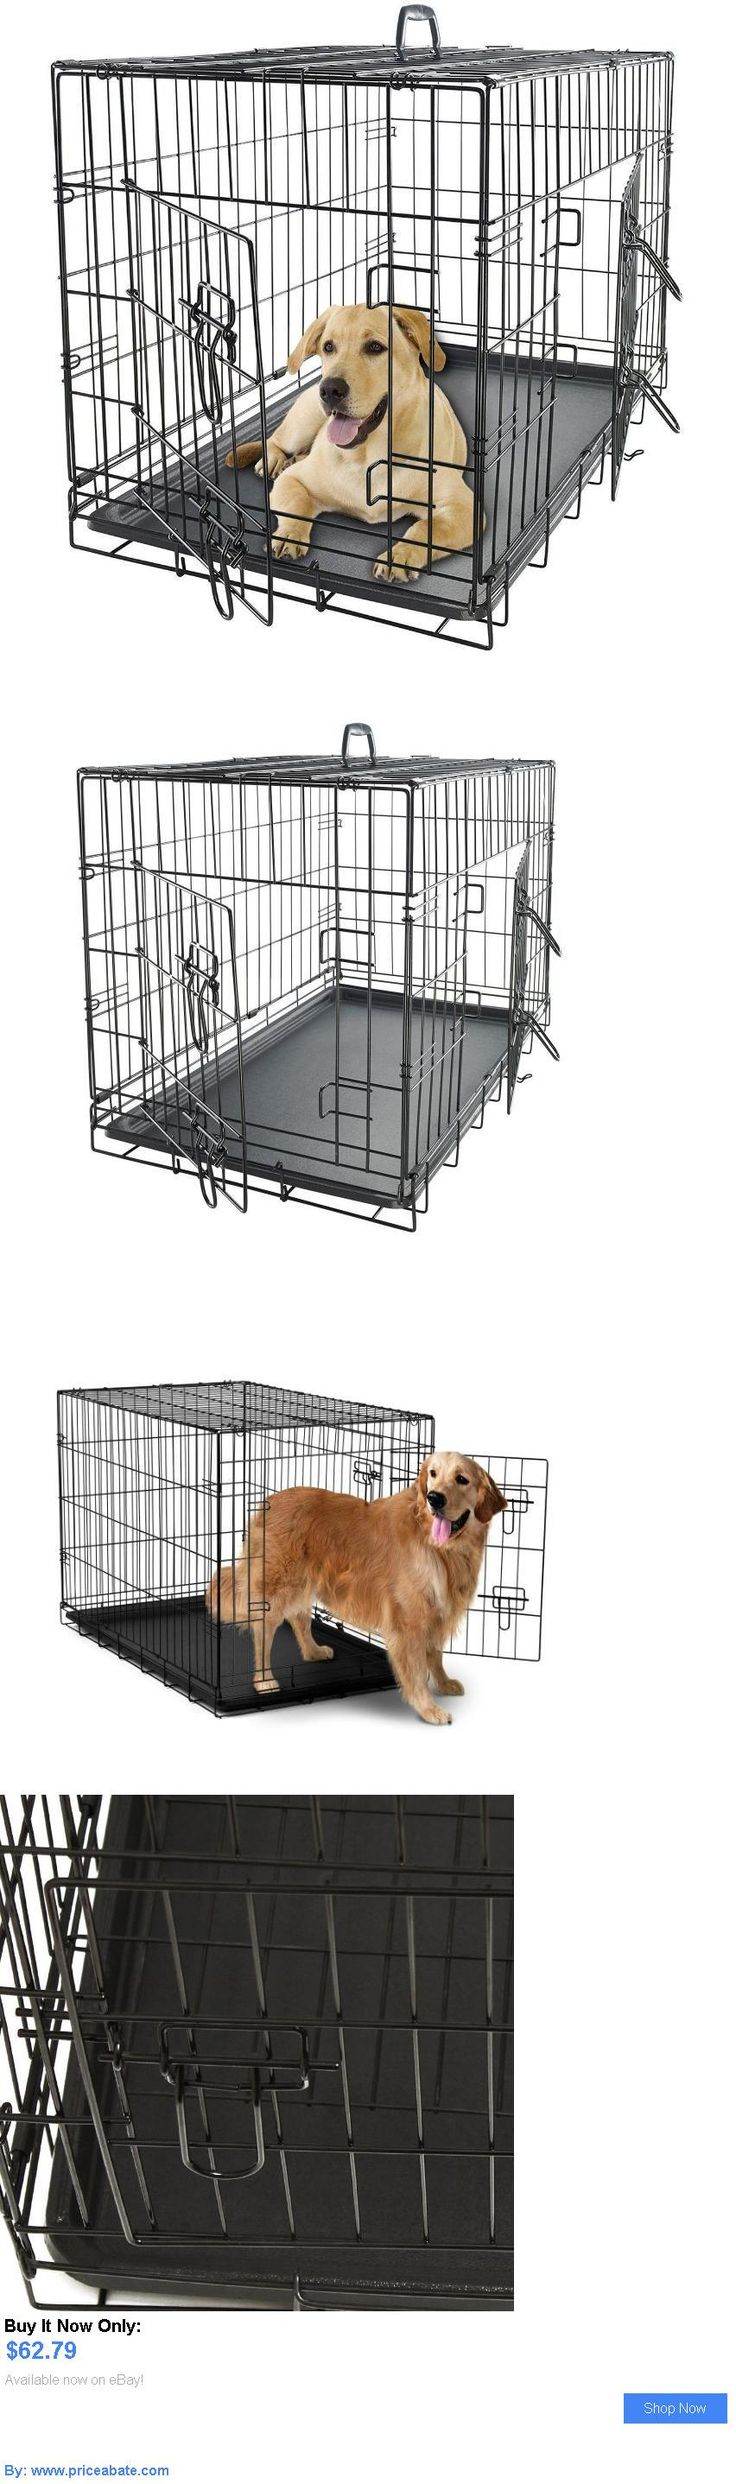 Animals Dog: Xxl Dog Crate And Kennels For Extra Large Dogs Pet 48 Folding Metal 2-Door Cats BUY IT NOW ONLY: $62.79 #priceabateAnimalsDog OR #priceabate